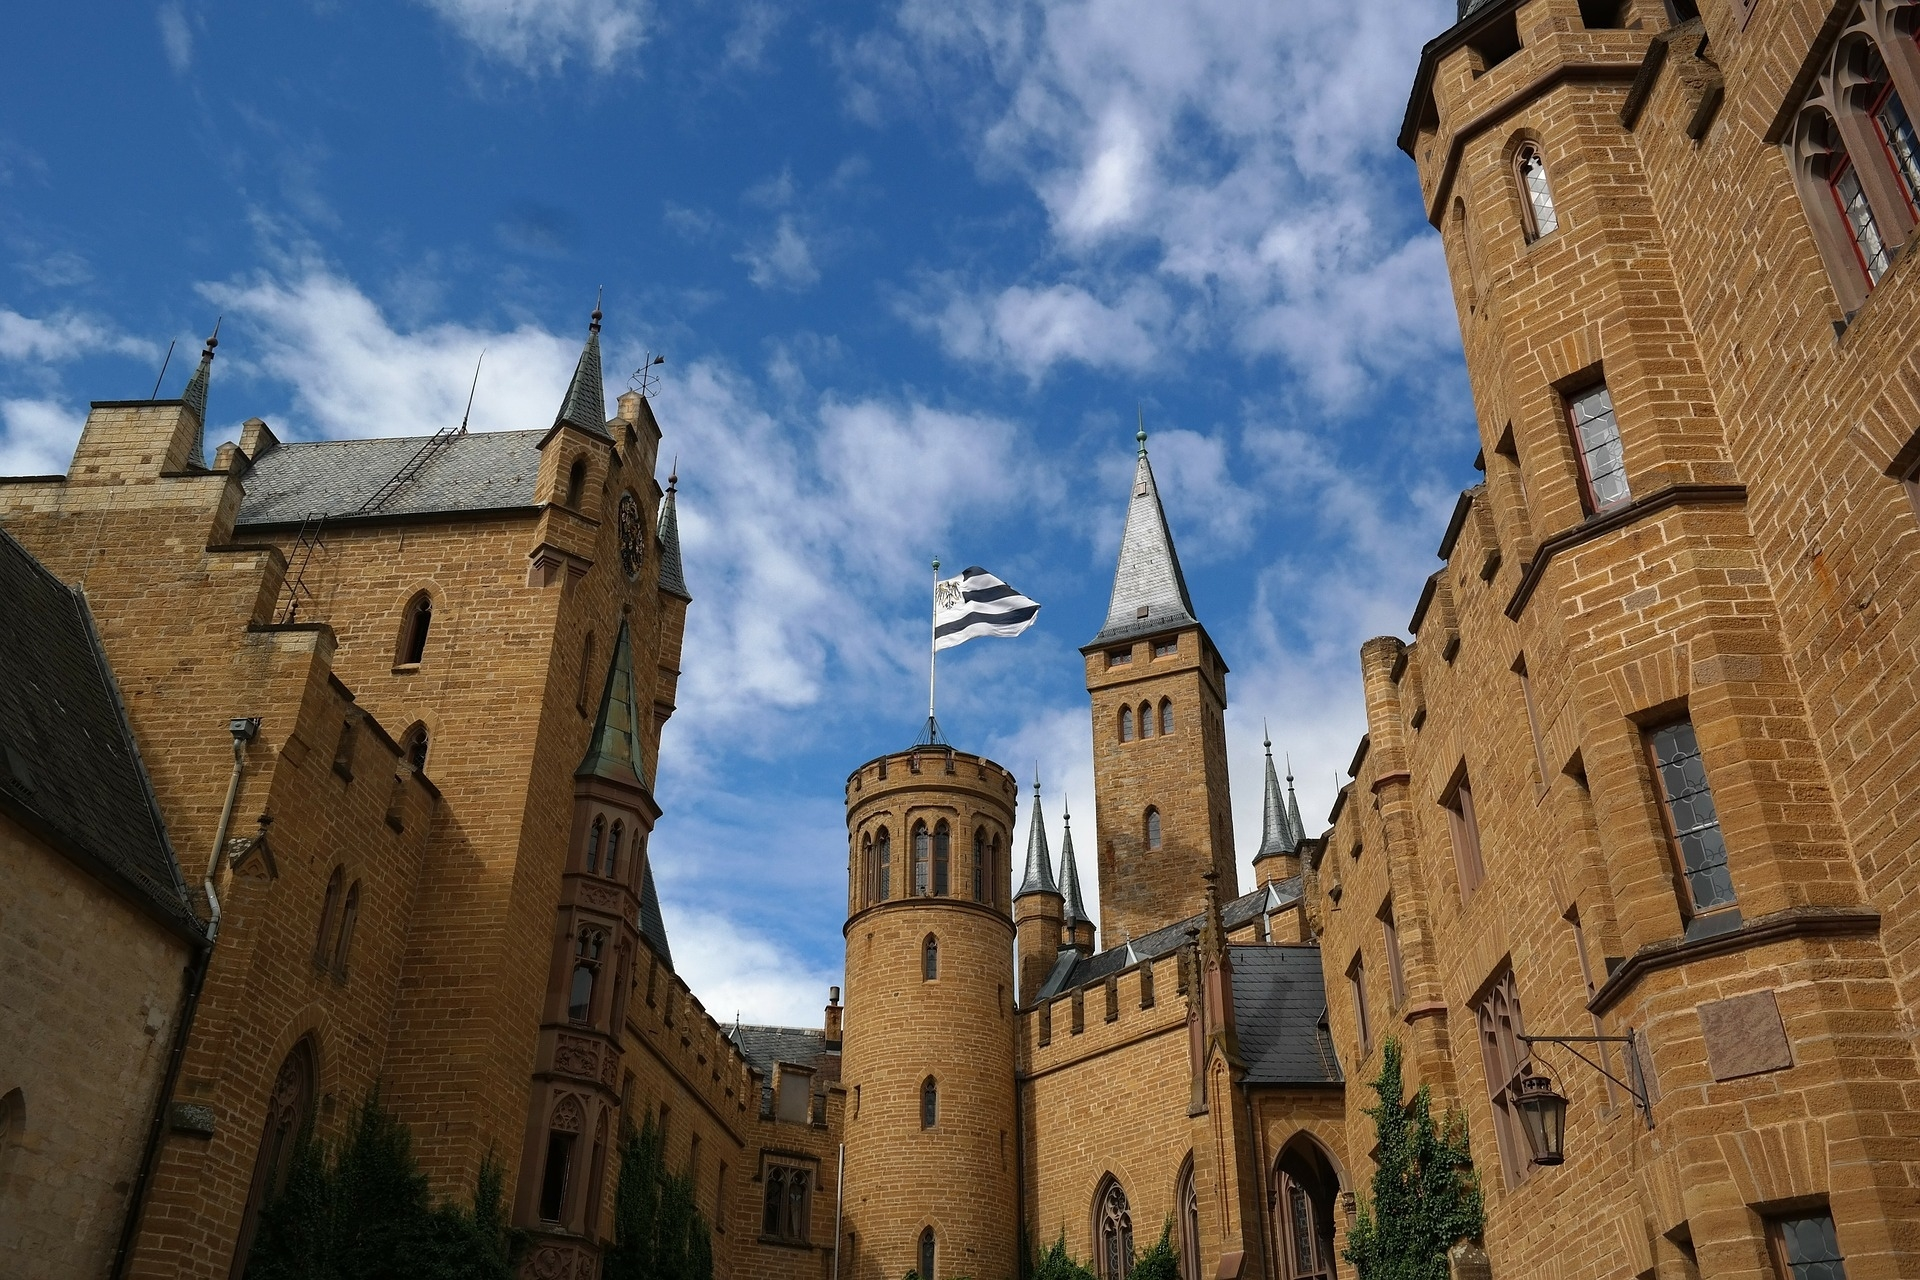 18 Must-See German Castles & Palaces (With Map!) - Bucket List Events intended for Ludwig Castles Germany Map